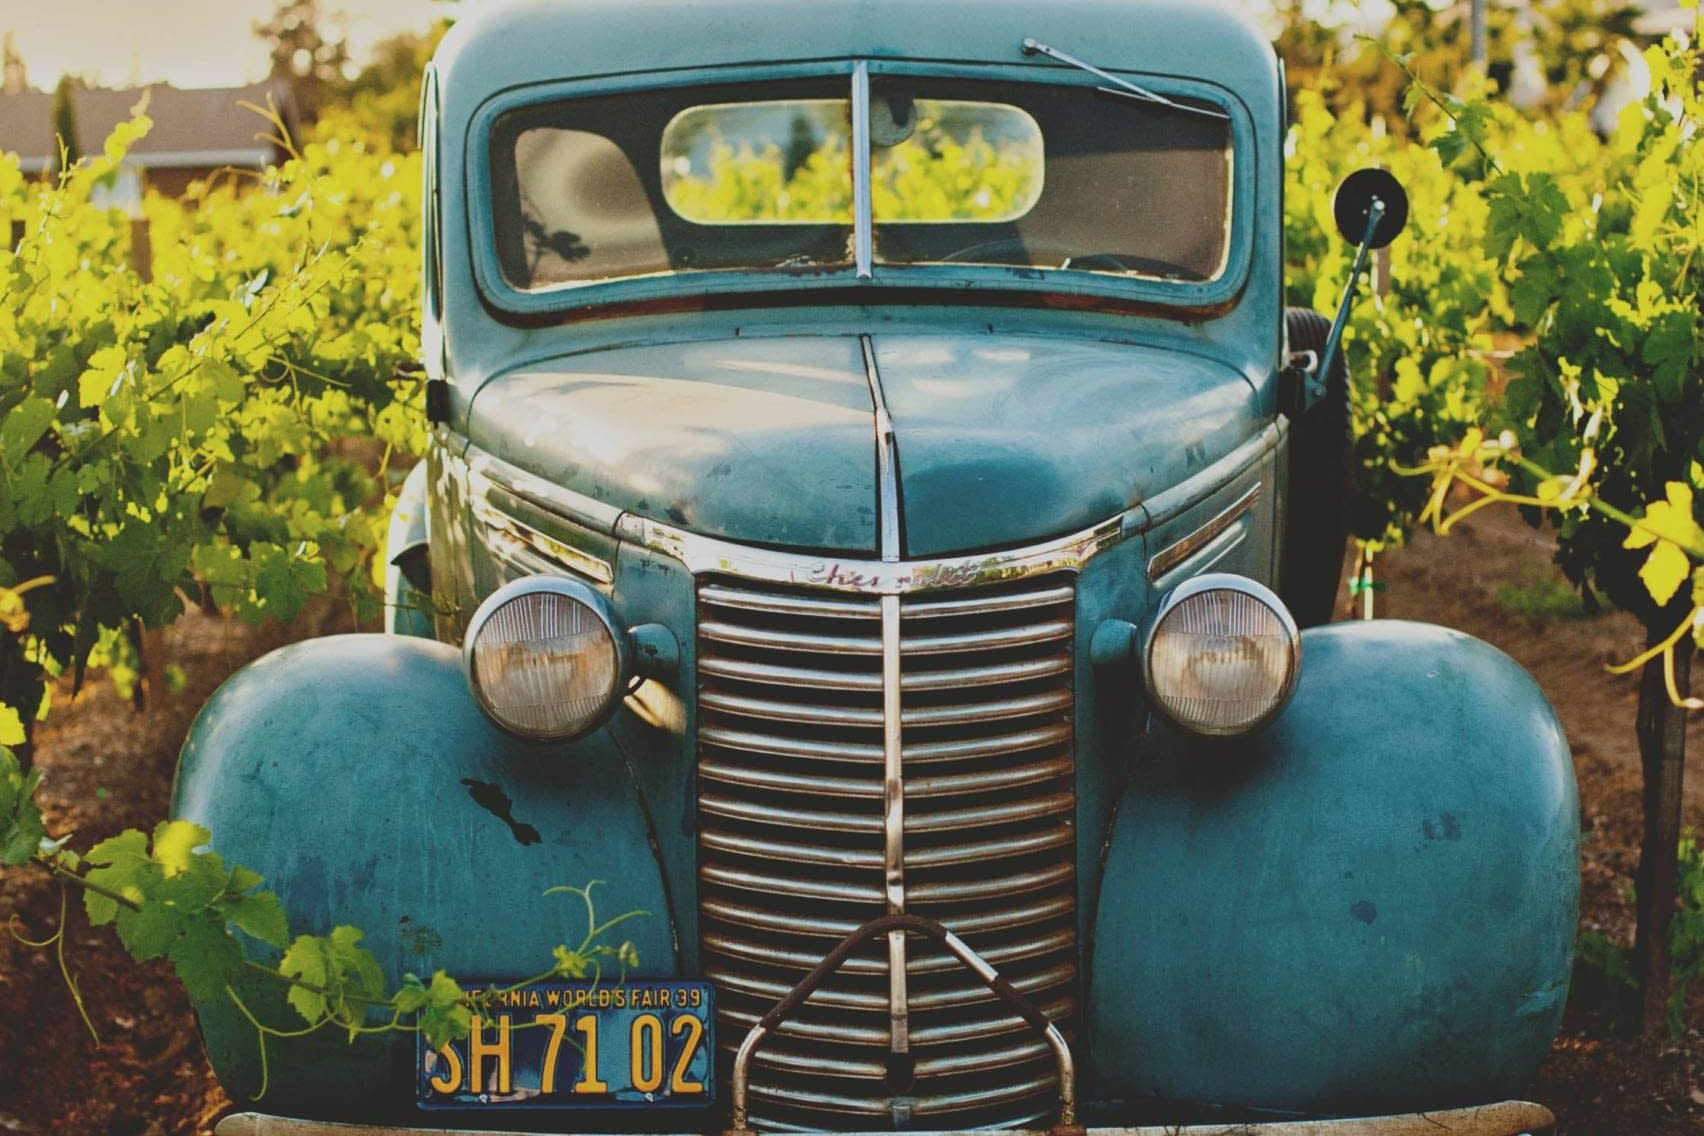 A vintage truck parked in a vineyard